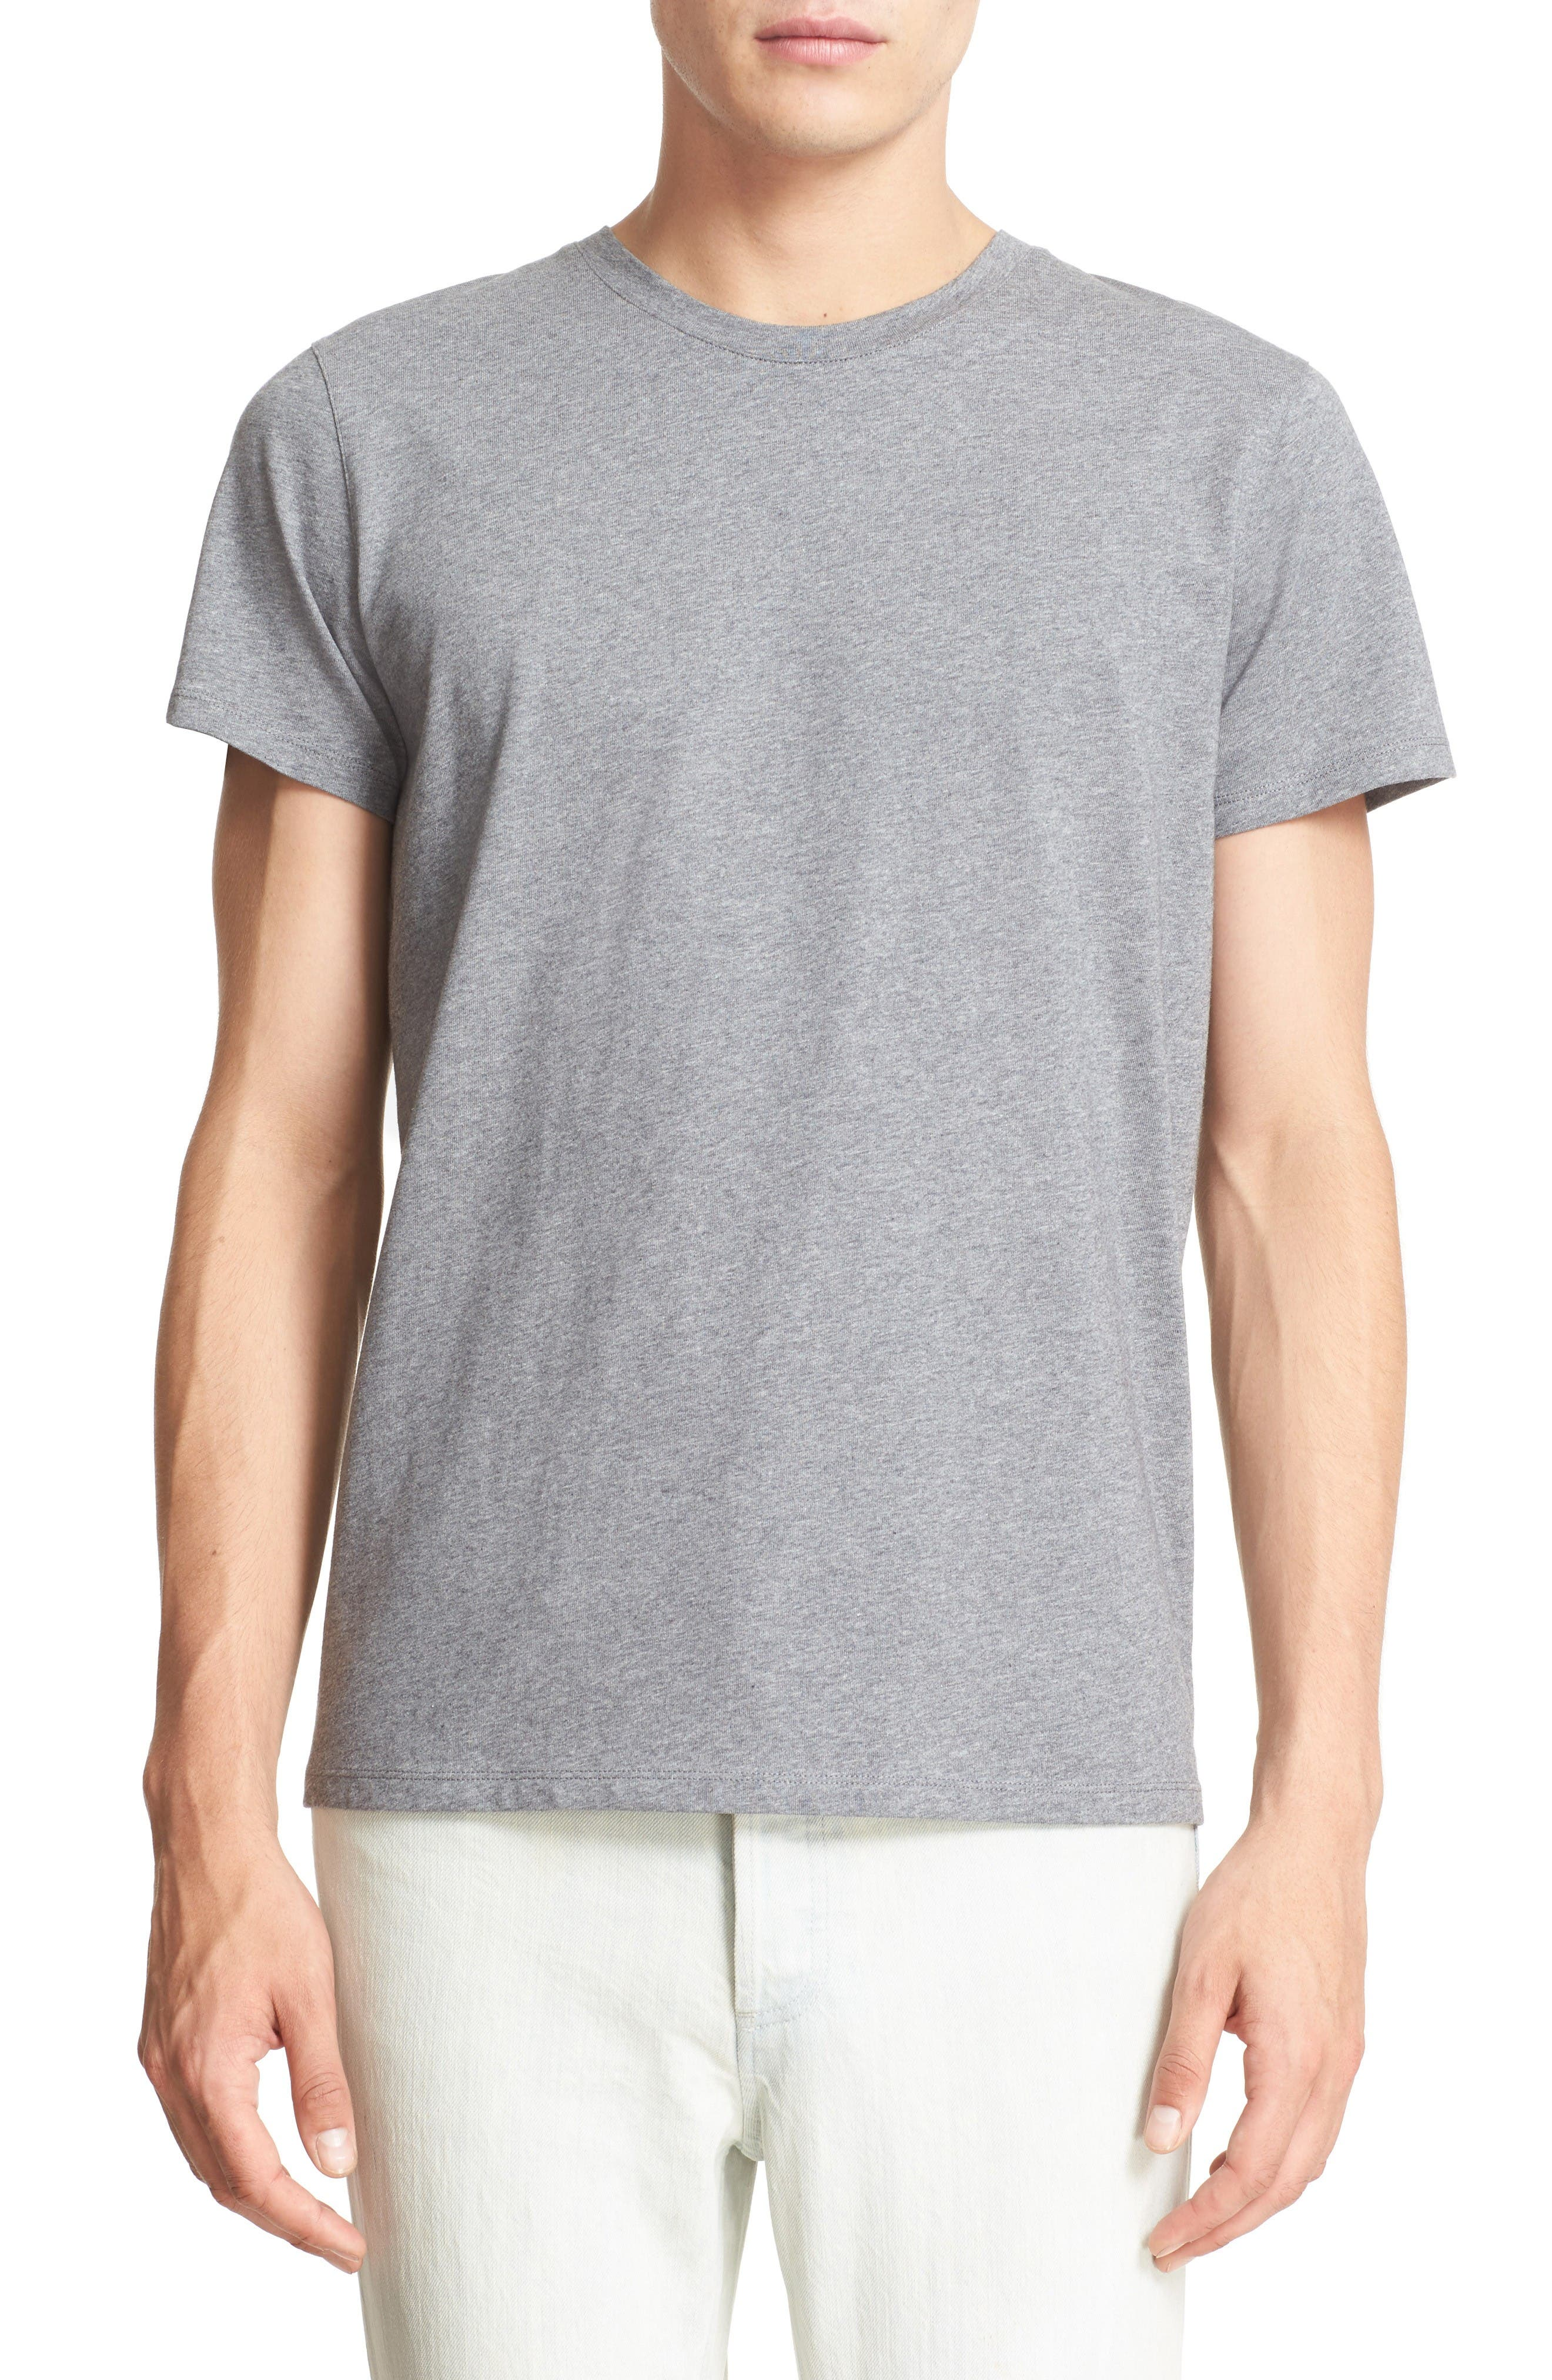 A.P.C. Jimmy Solid Core T-Shirt